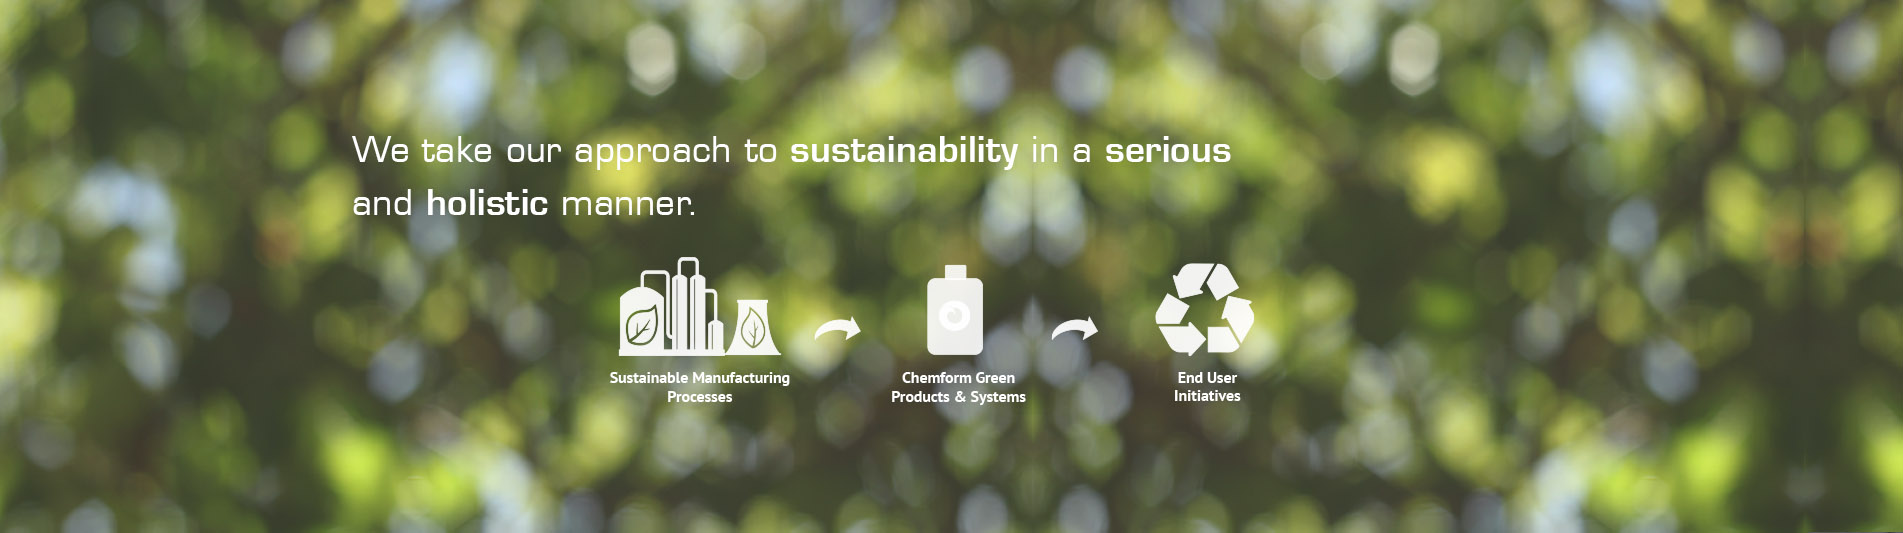 Holistic-Sustainability-Web1